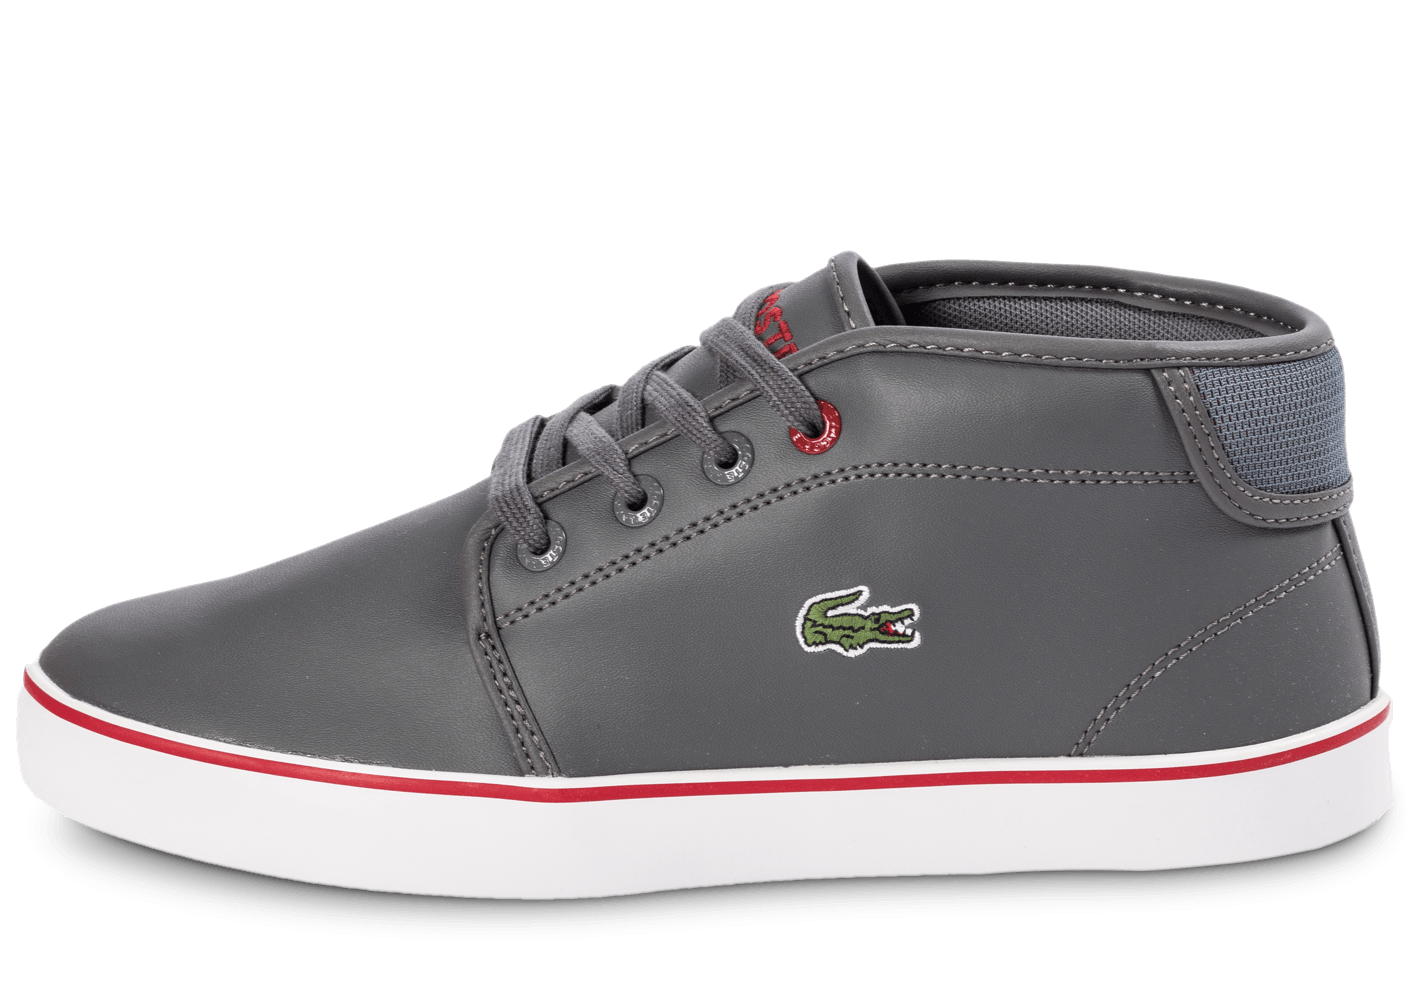 ca66236fadb Chaussure Chaussure Lacoste Lacoste Chaussure Ado Lacoste Ado Ado Chaussure  wZ61Xqw